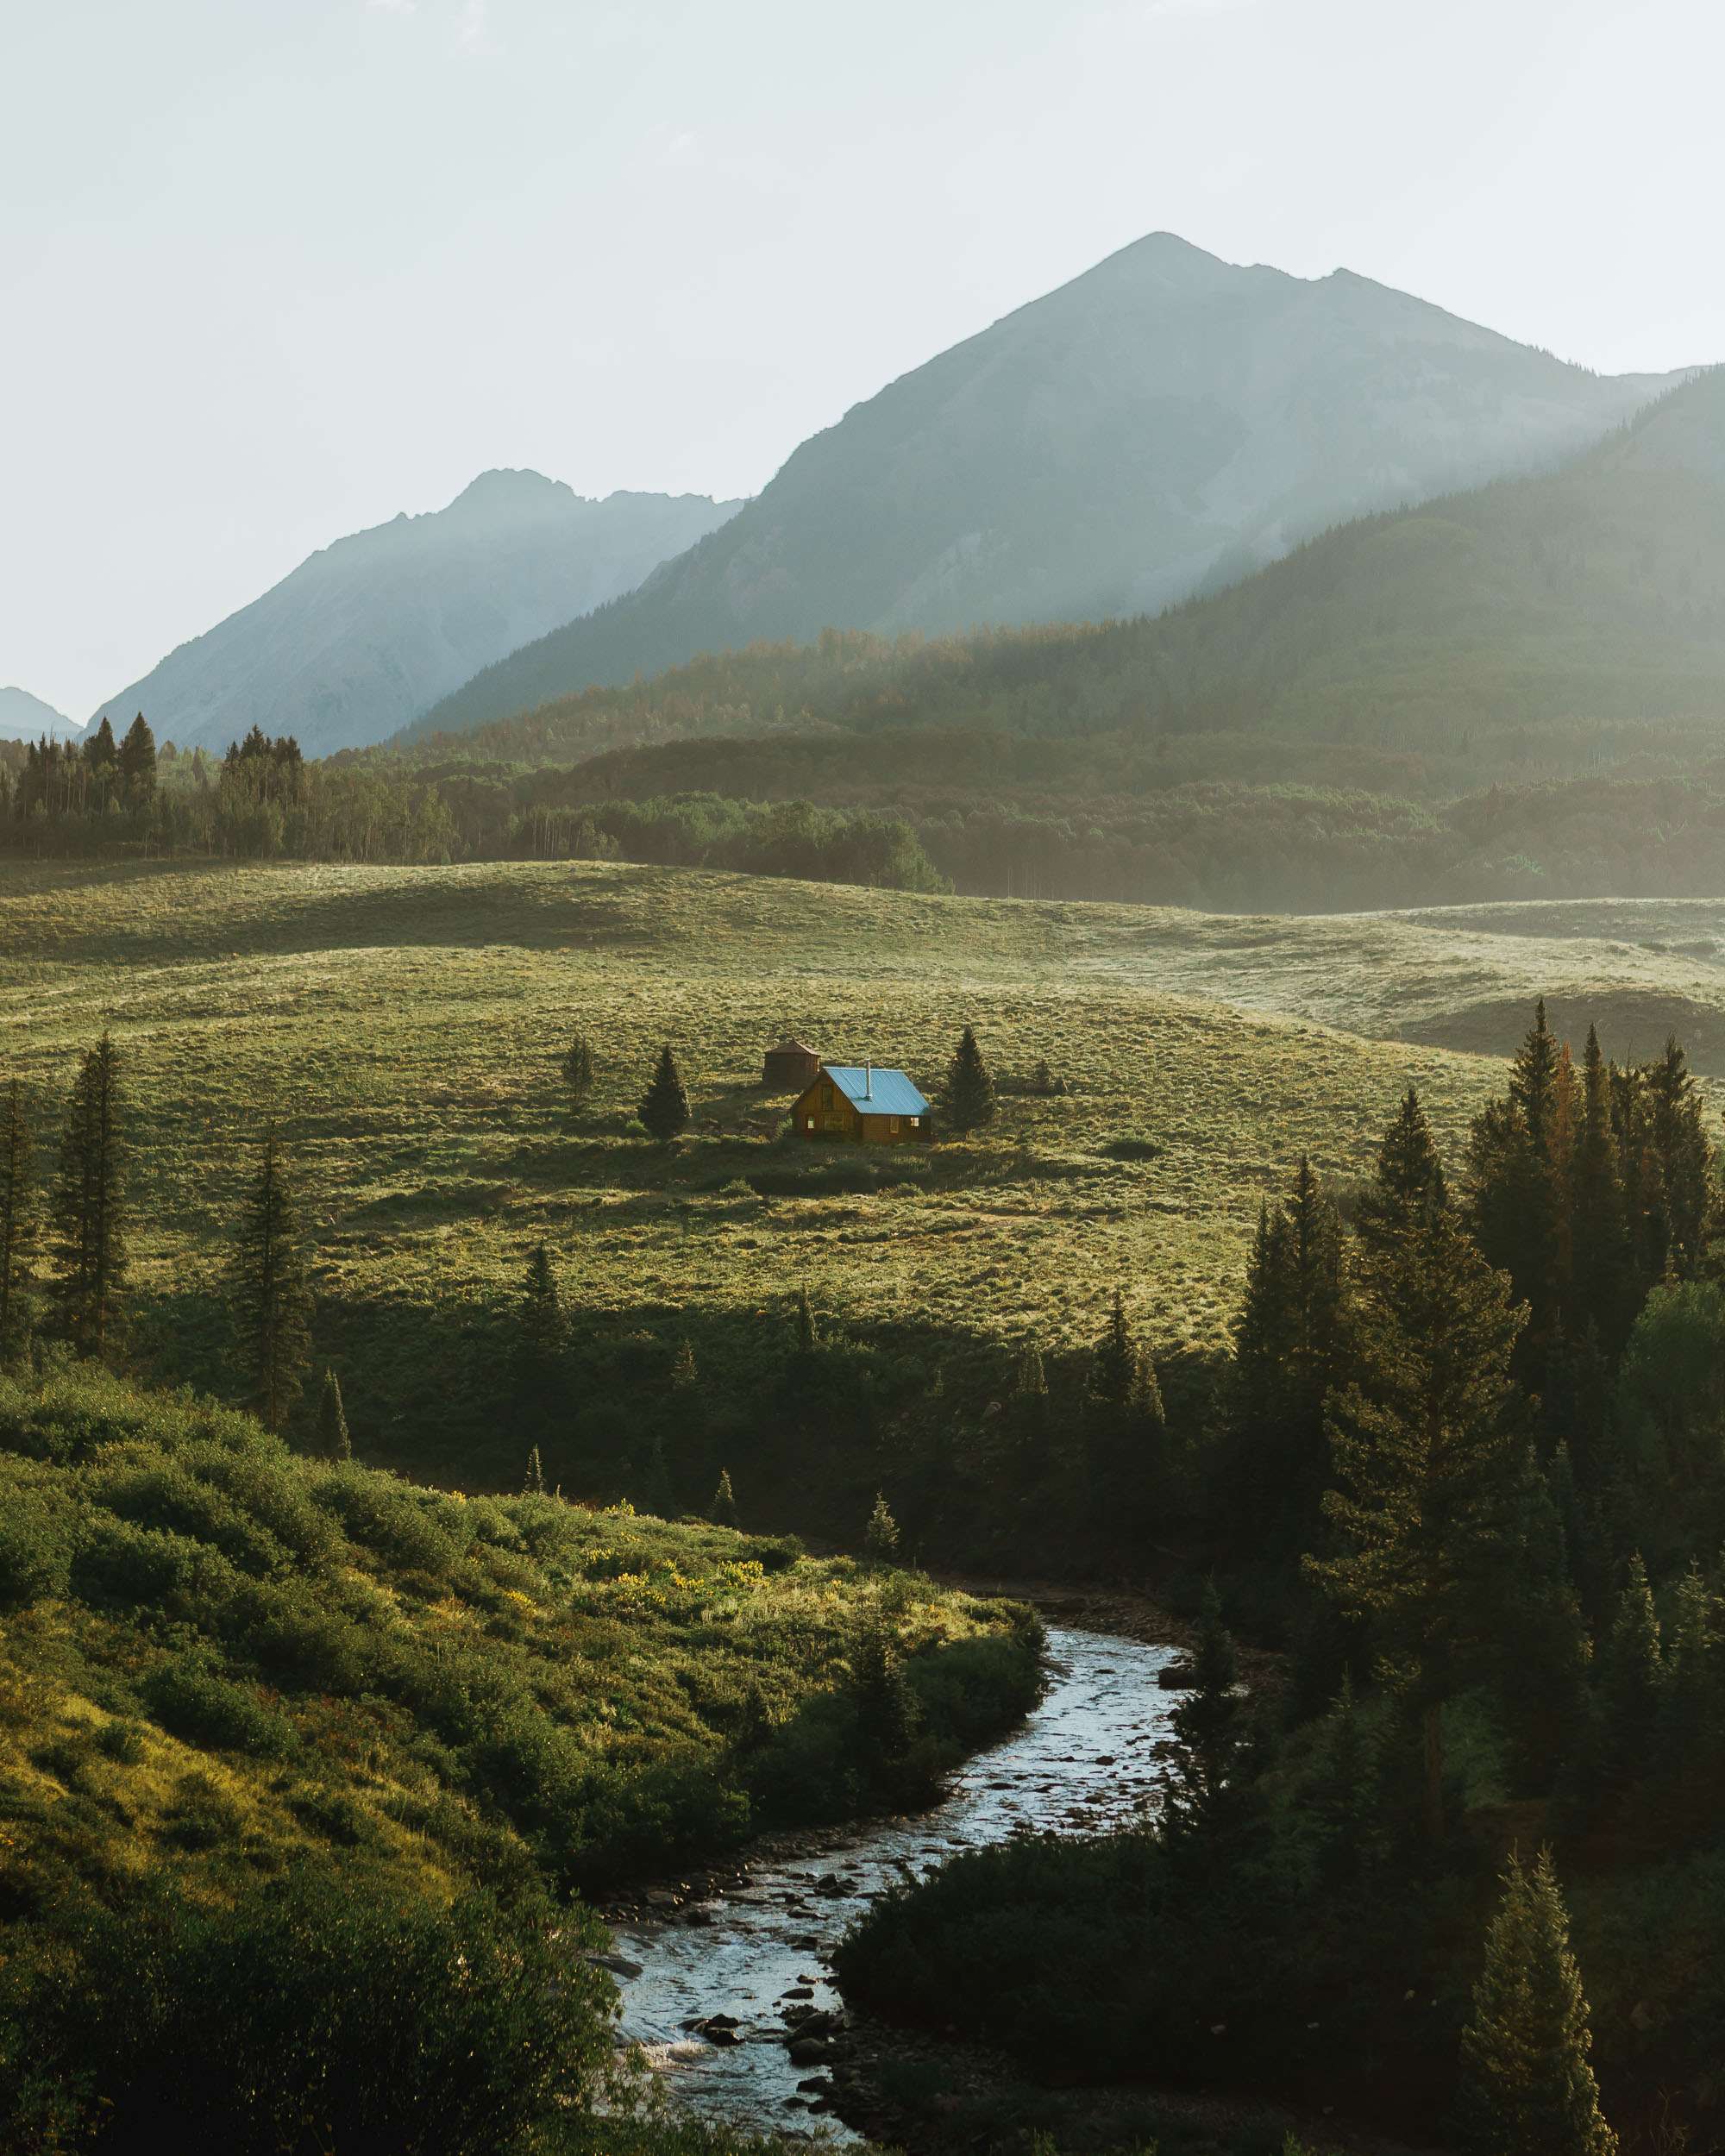 crested-butte-cabin-winding-river-mountains.JPG